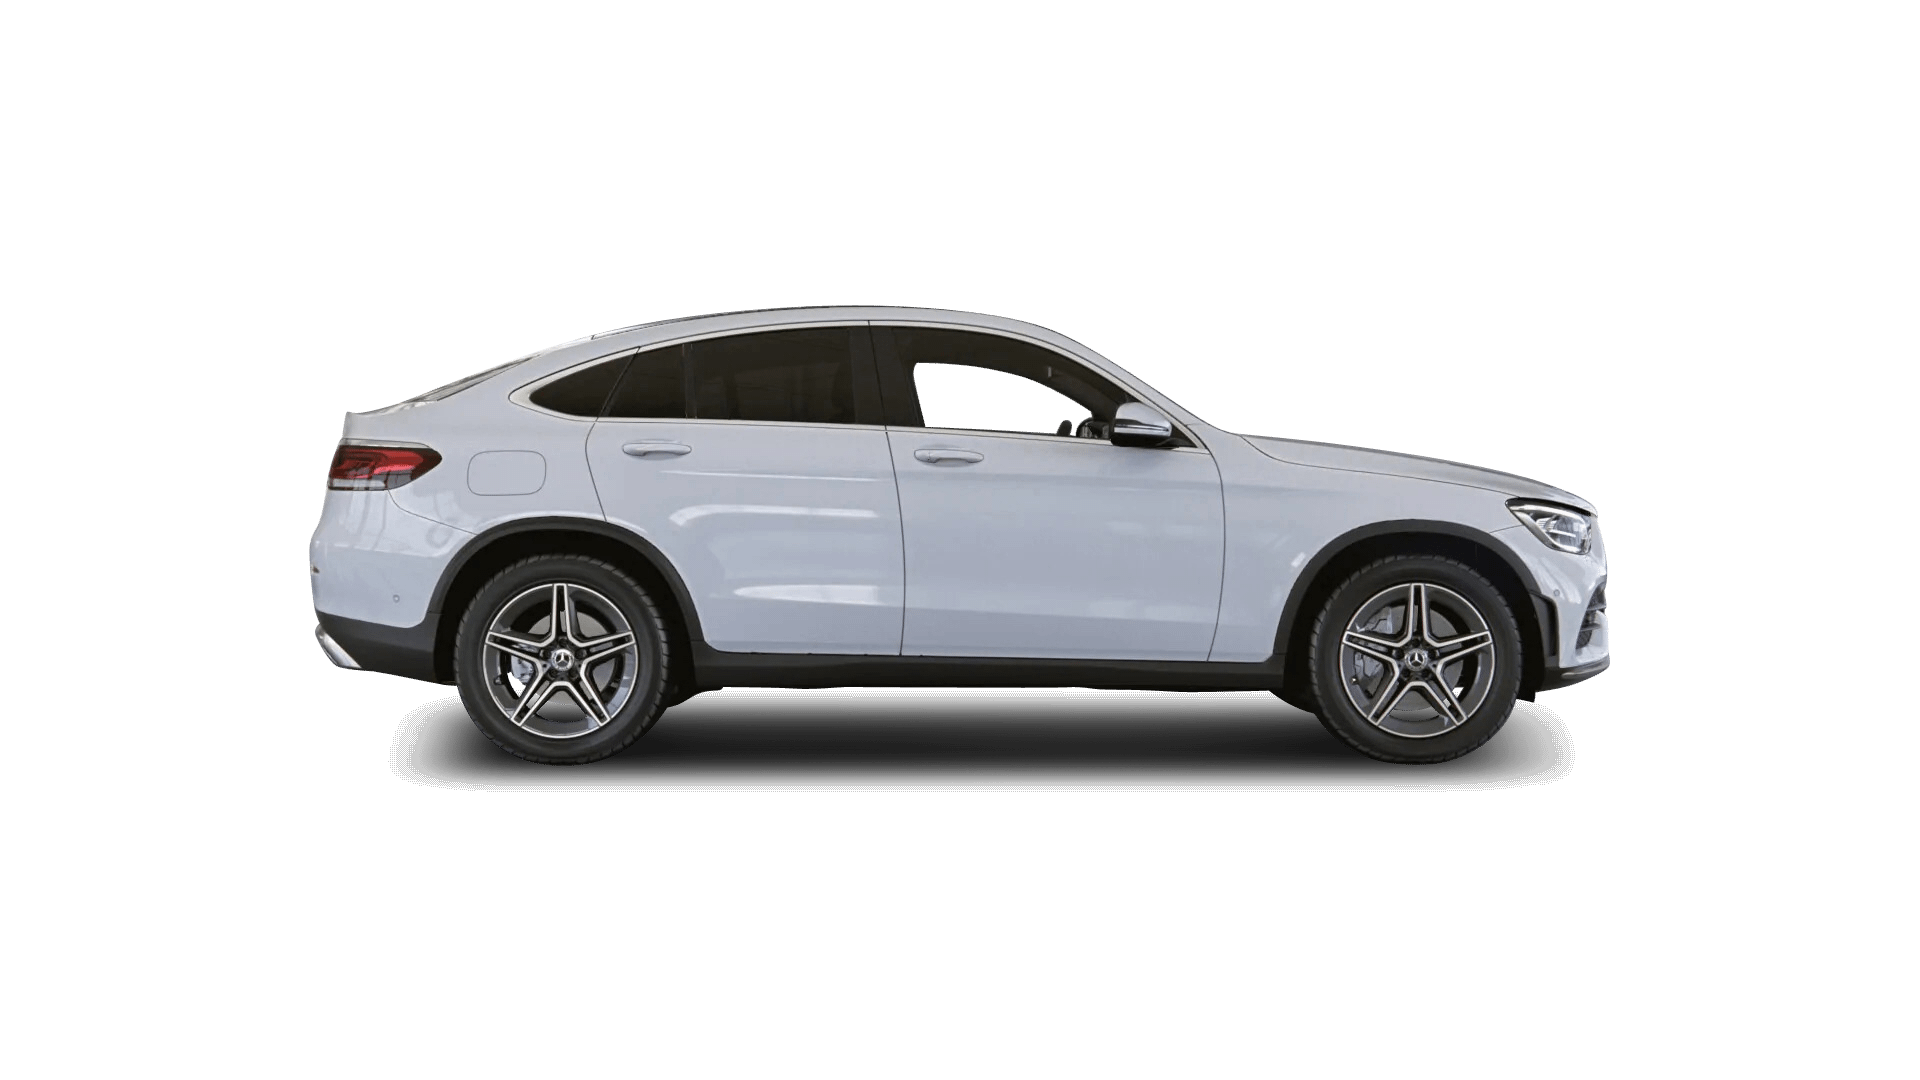 https://bluesky-cogcms.cdn.imgeng.in/media/34772/glc-coupe-sport-edition.png